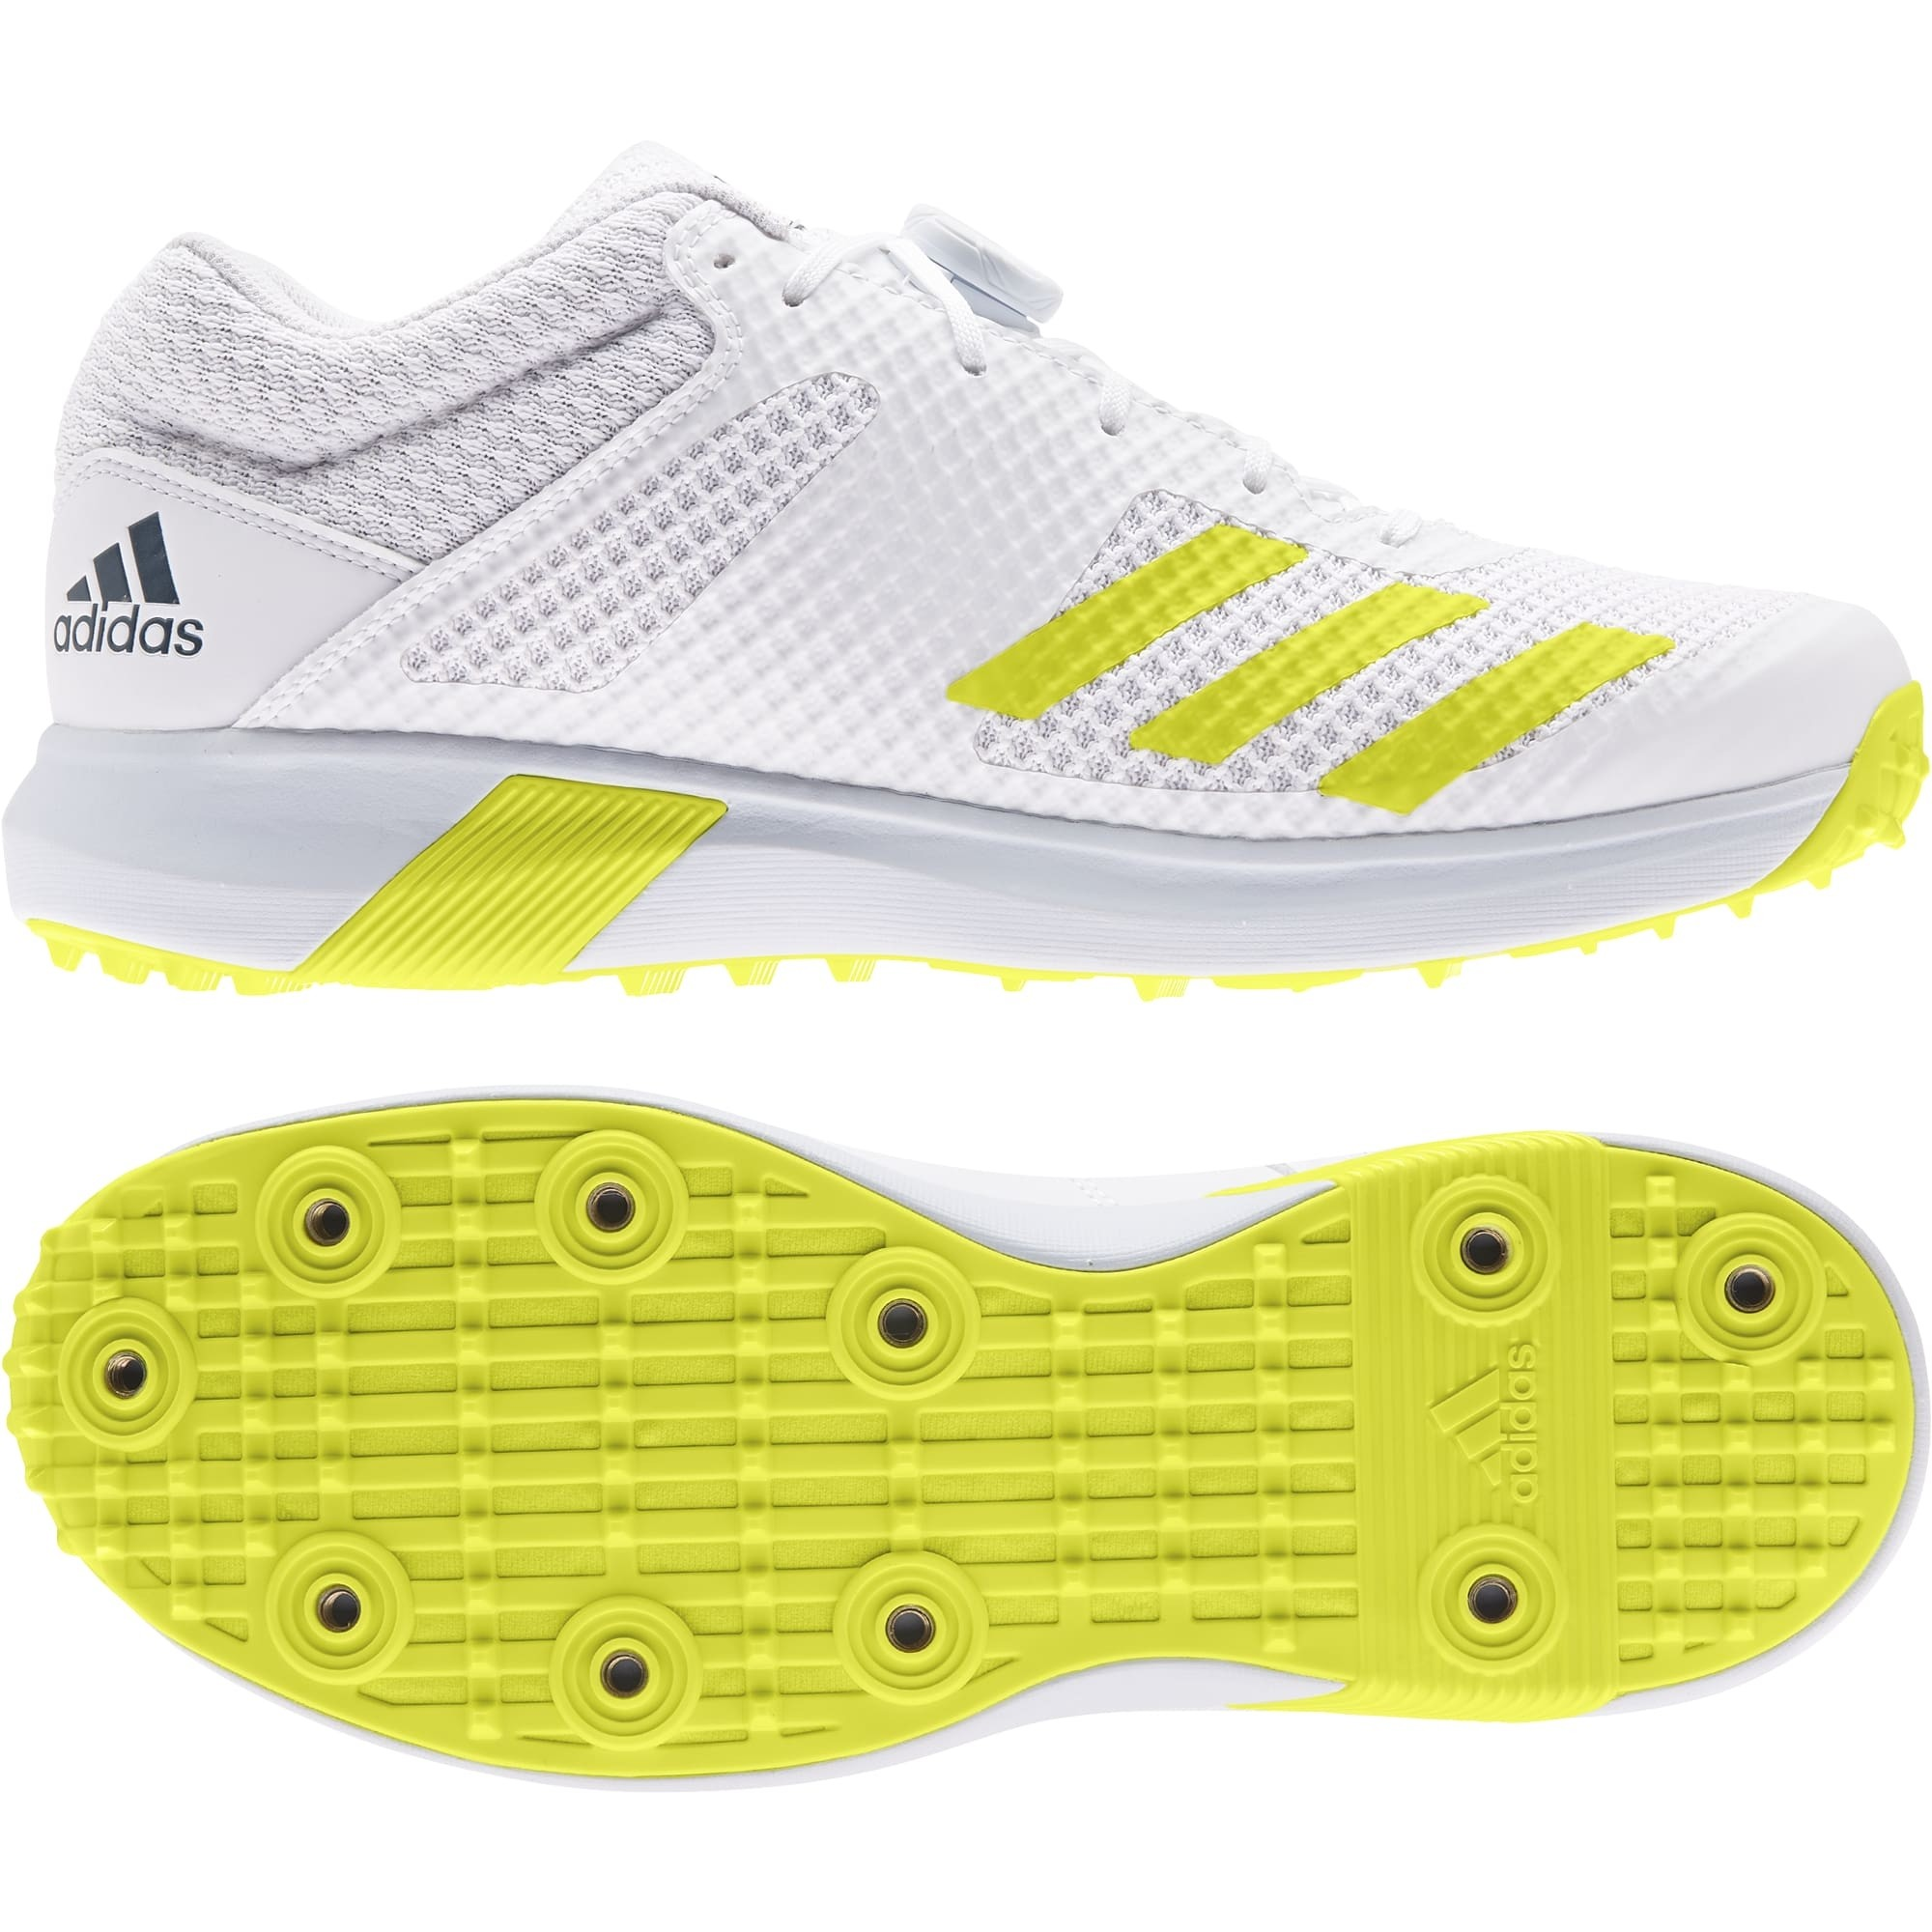 2021 Adidas AdiPower Vector Mid Bowling Cricket Shoes - Acid Yellow